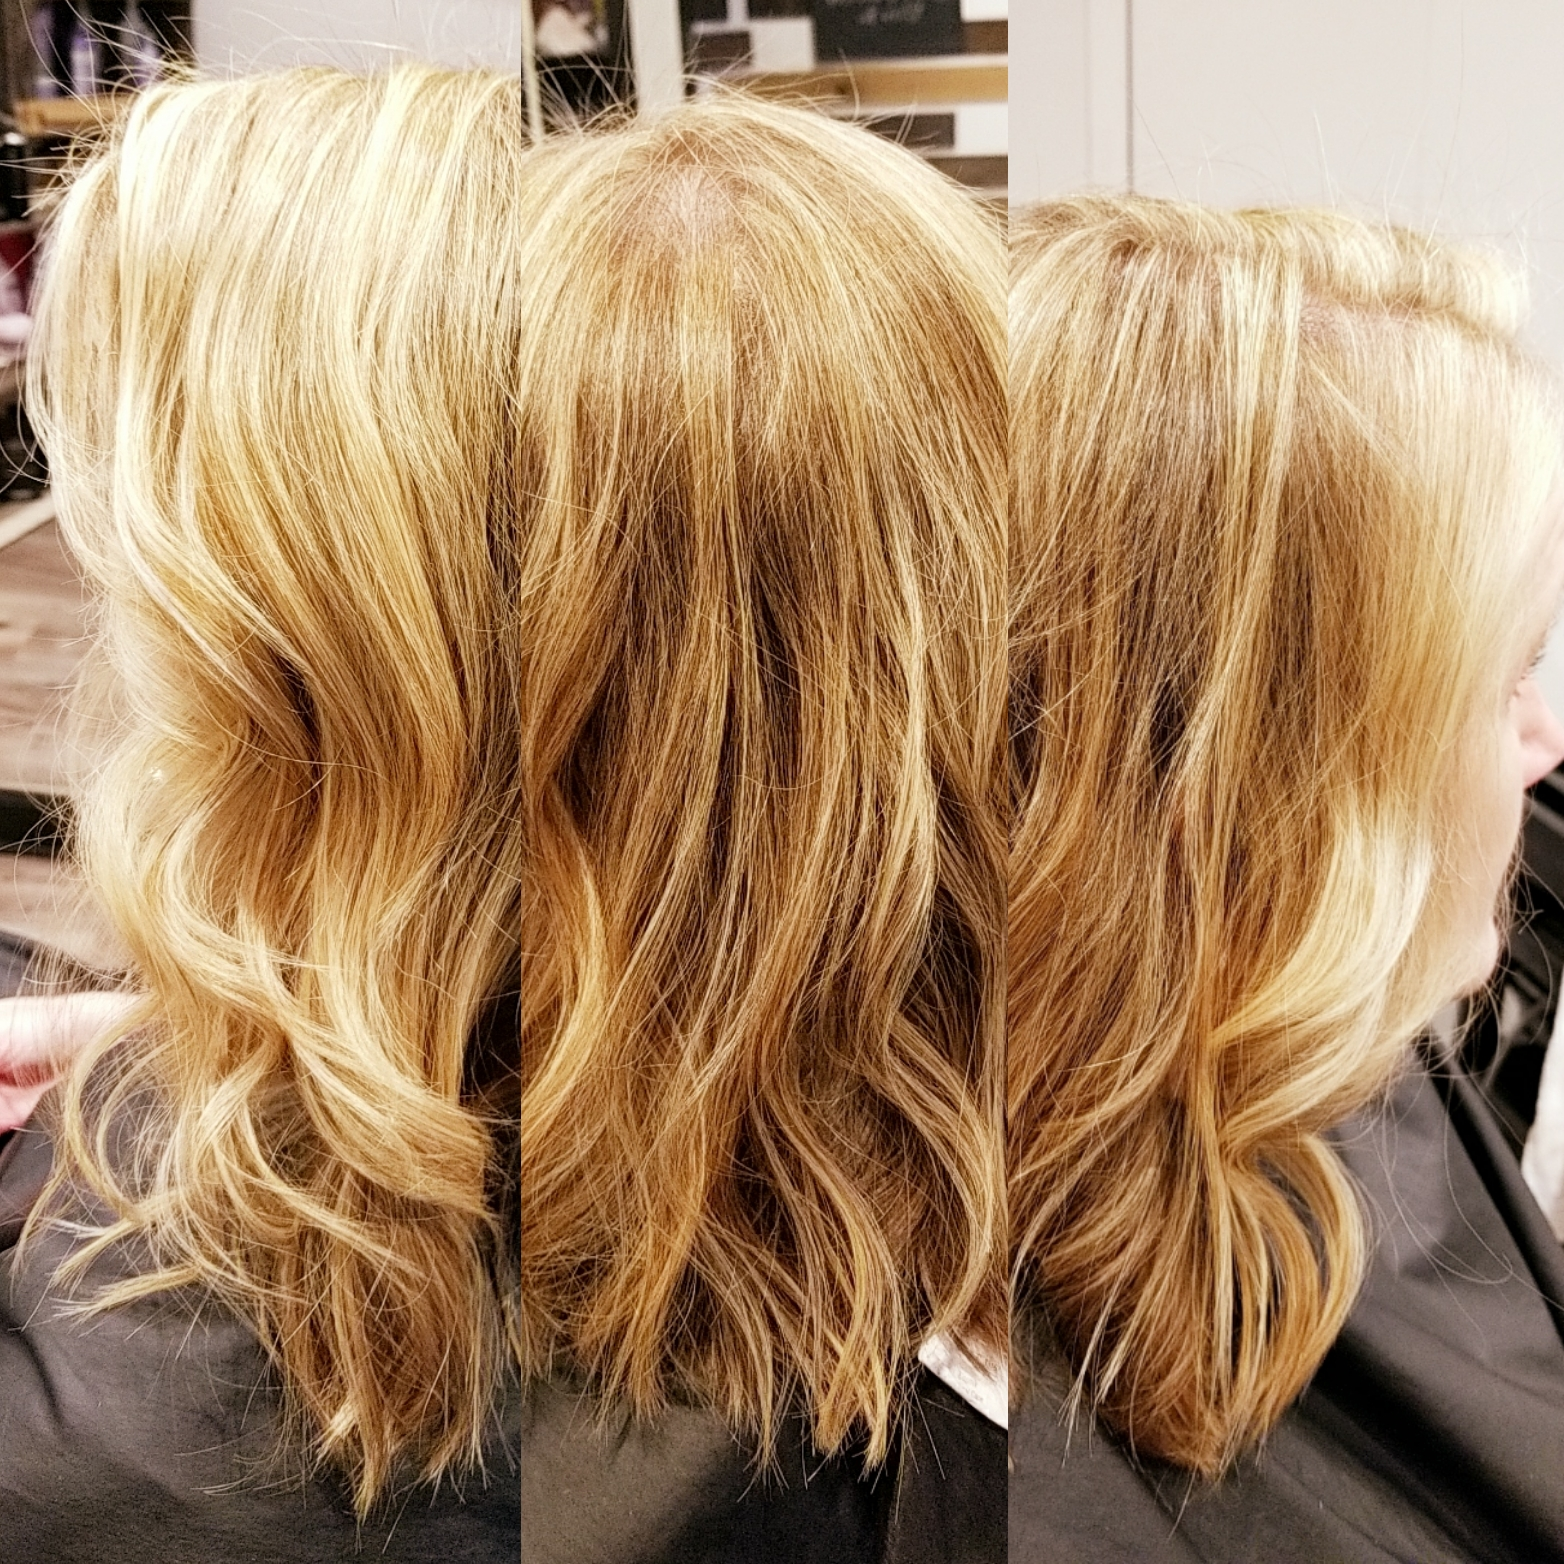 Blonde highlights, styled with waves